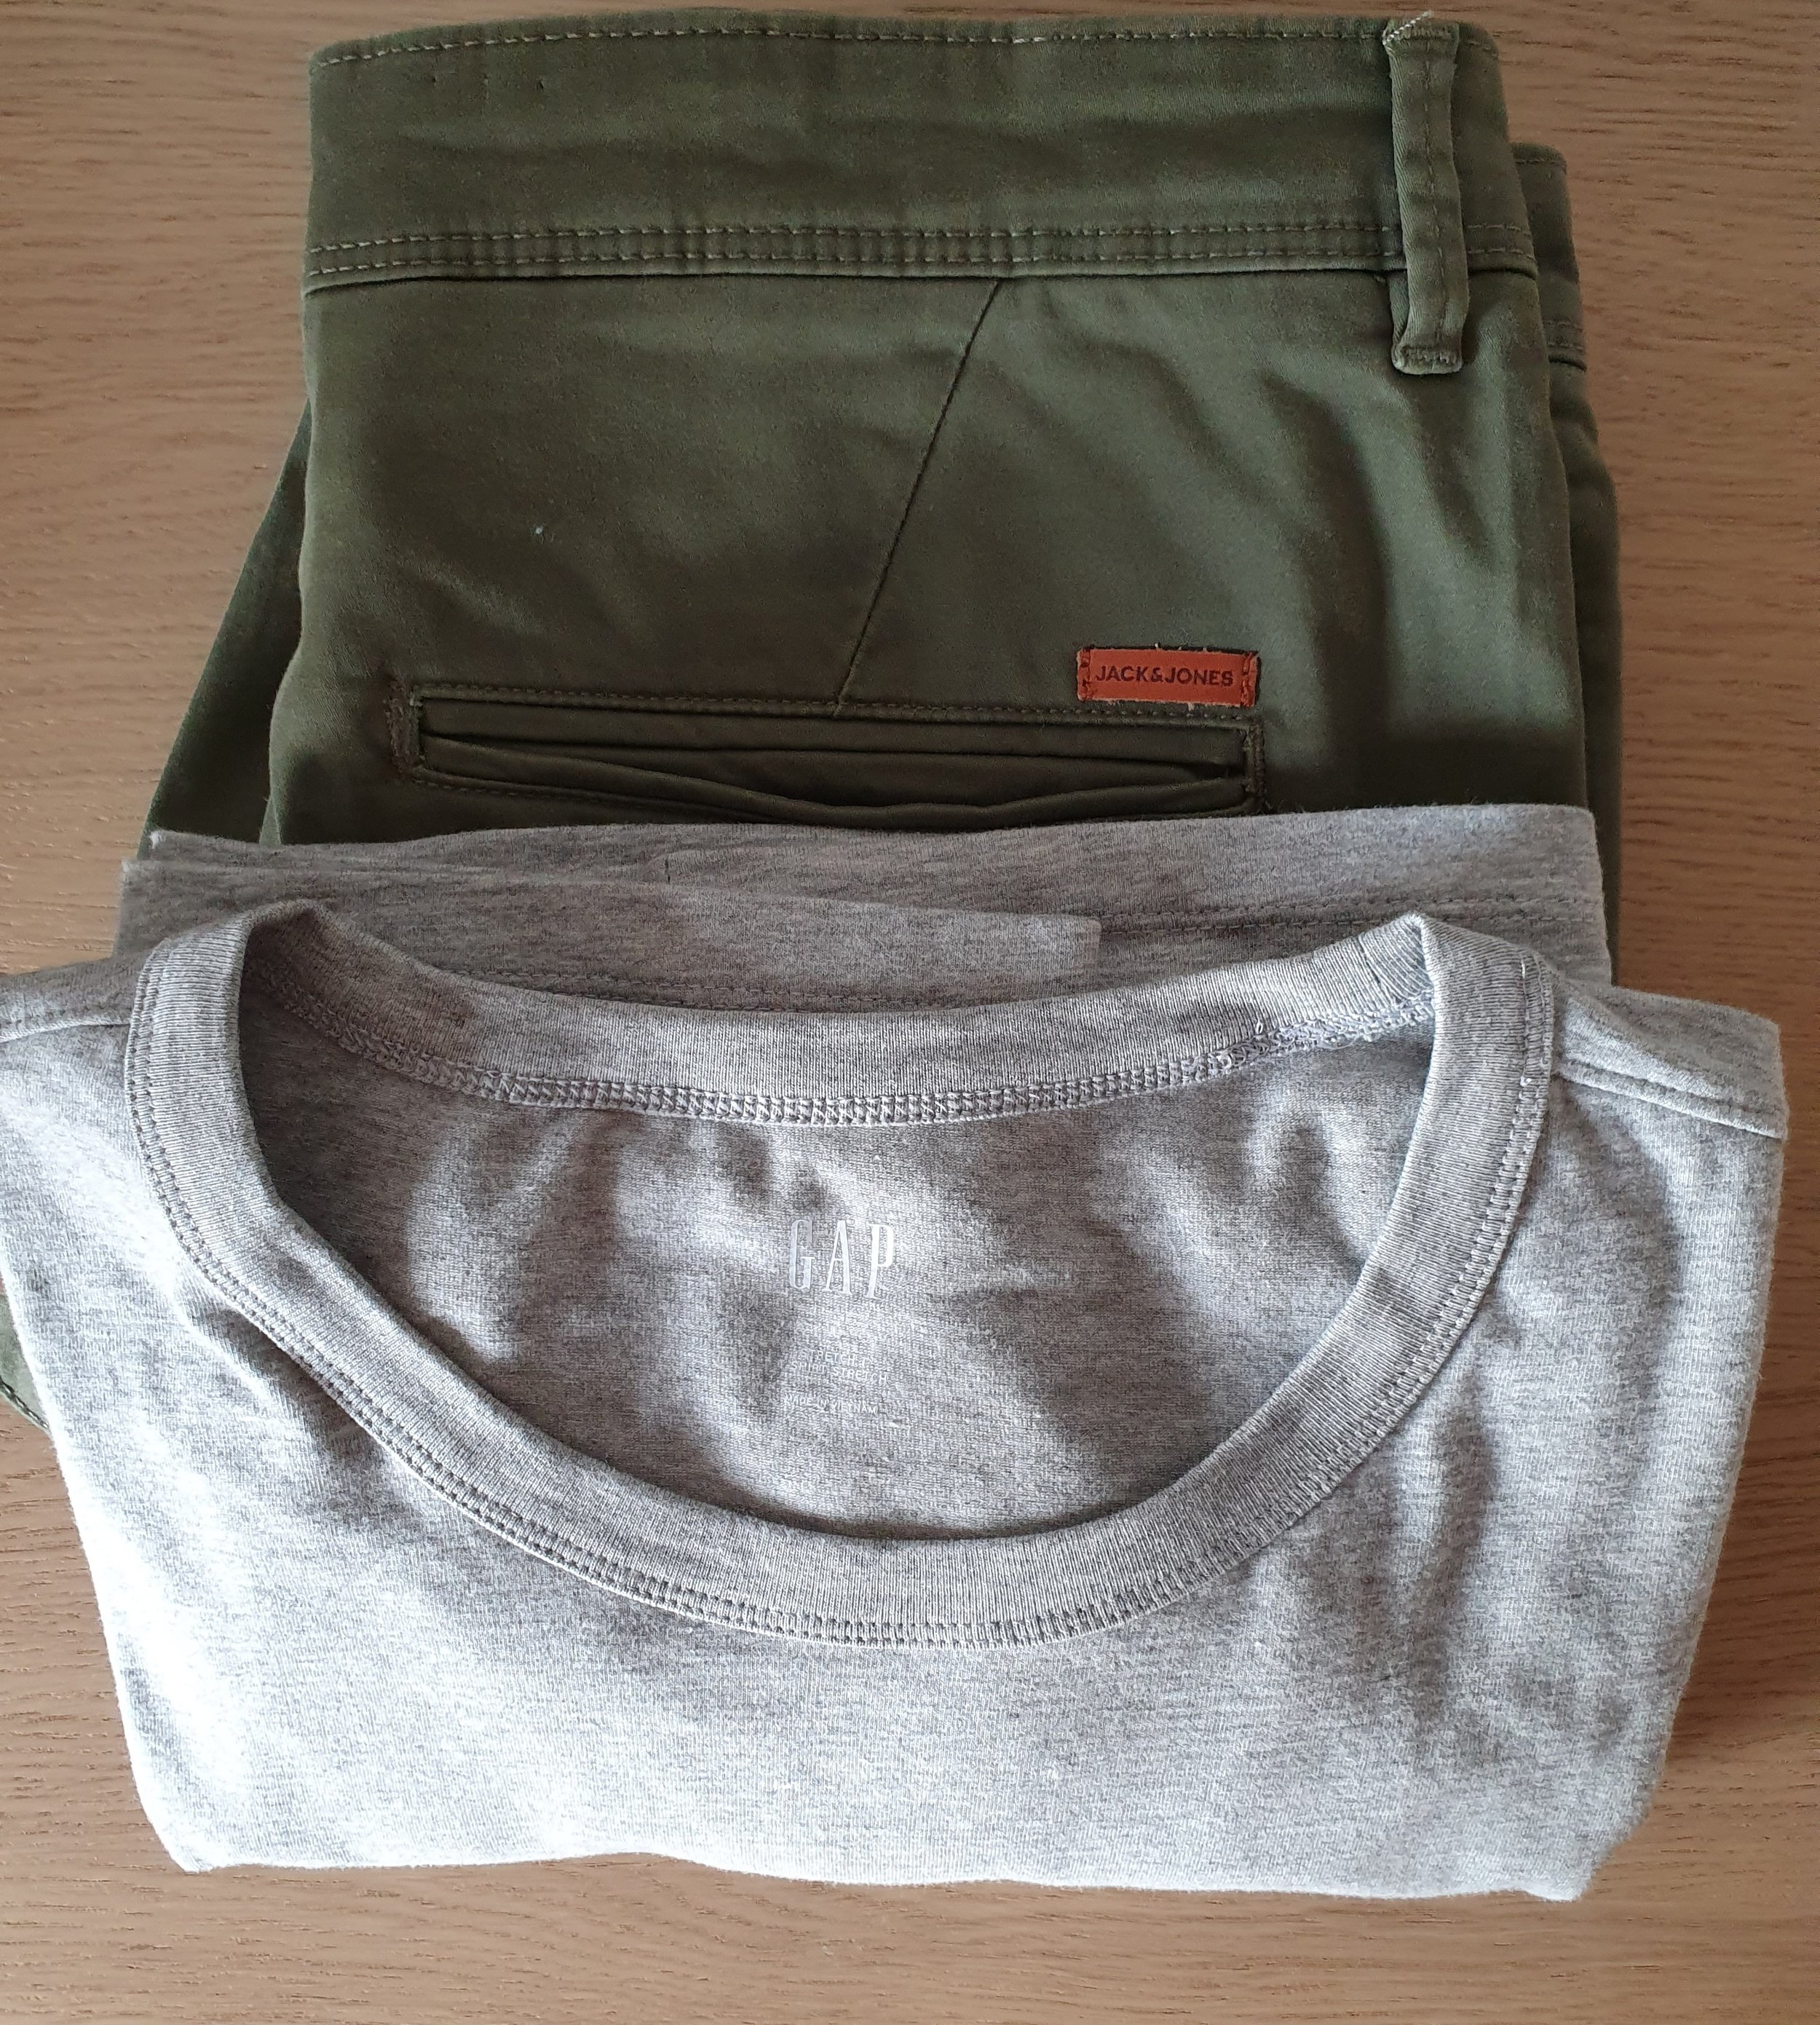 Khaki Green Chinos by Jack & Jones, Grey Slim Stretch T-Shirt by Gap